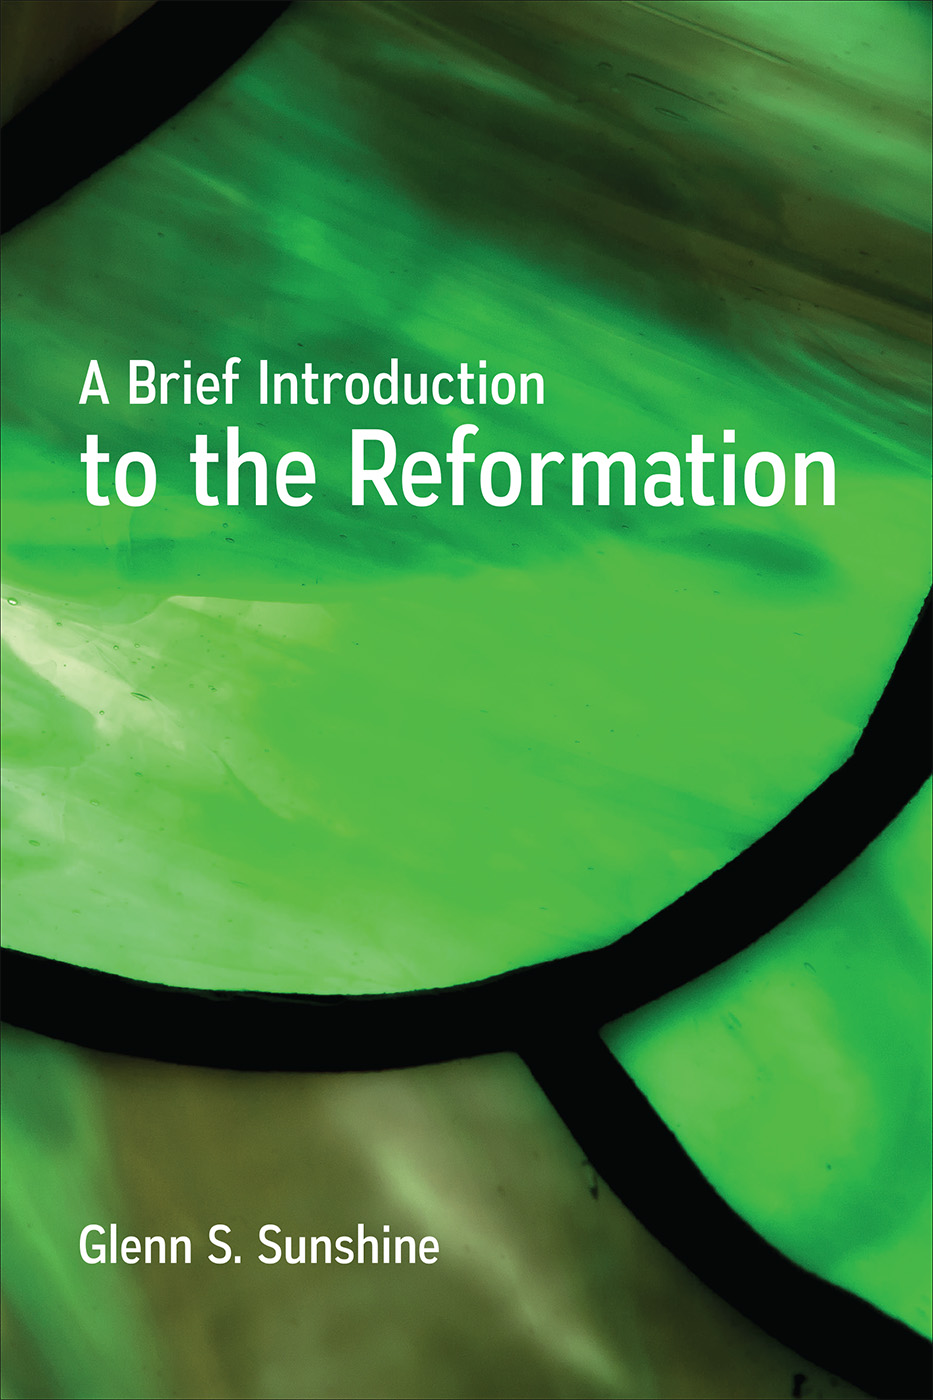 A Brief Introduction to the Reformation